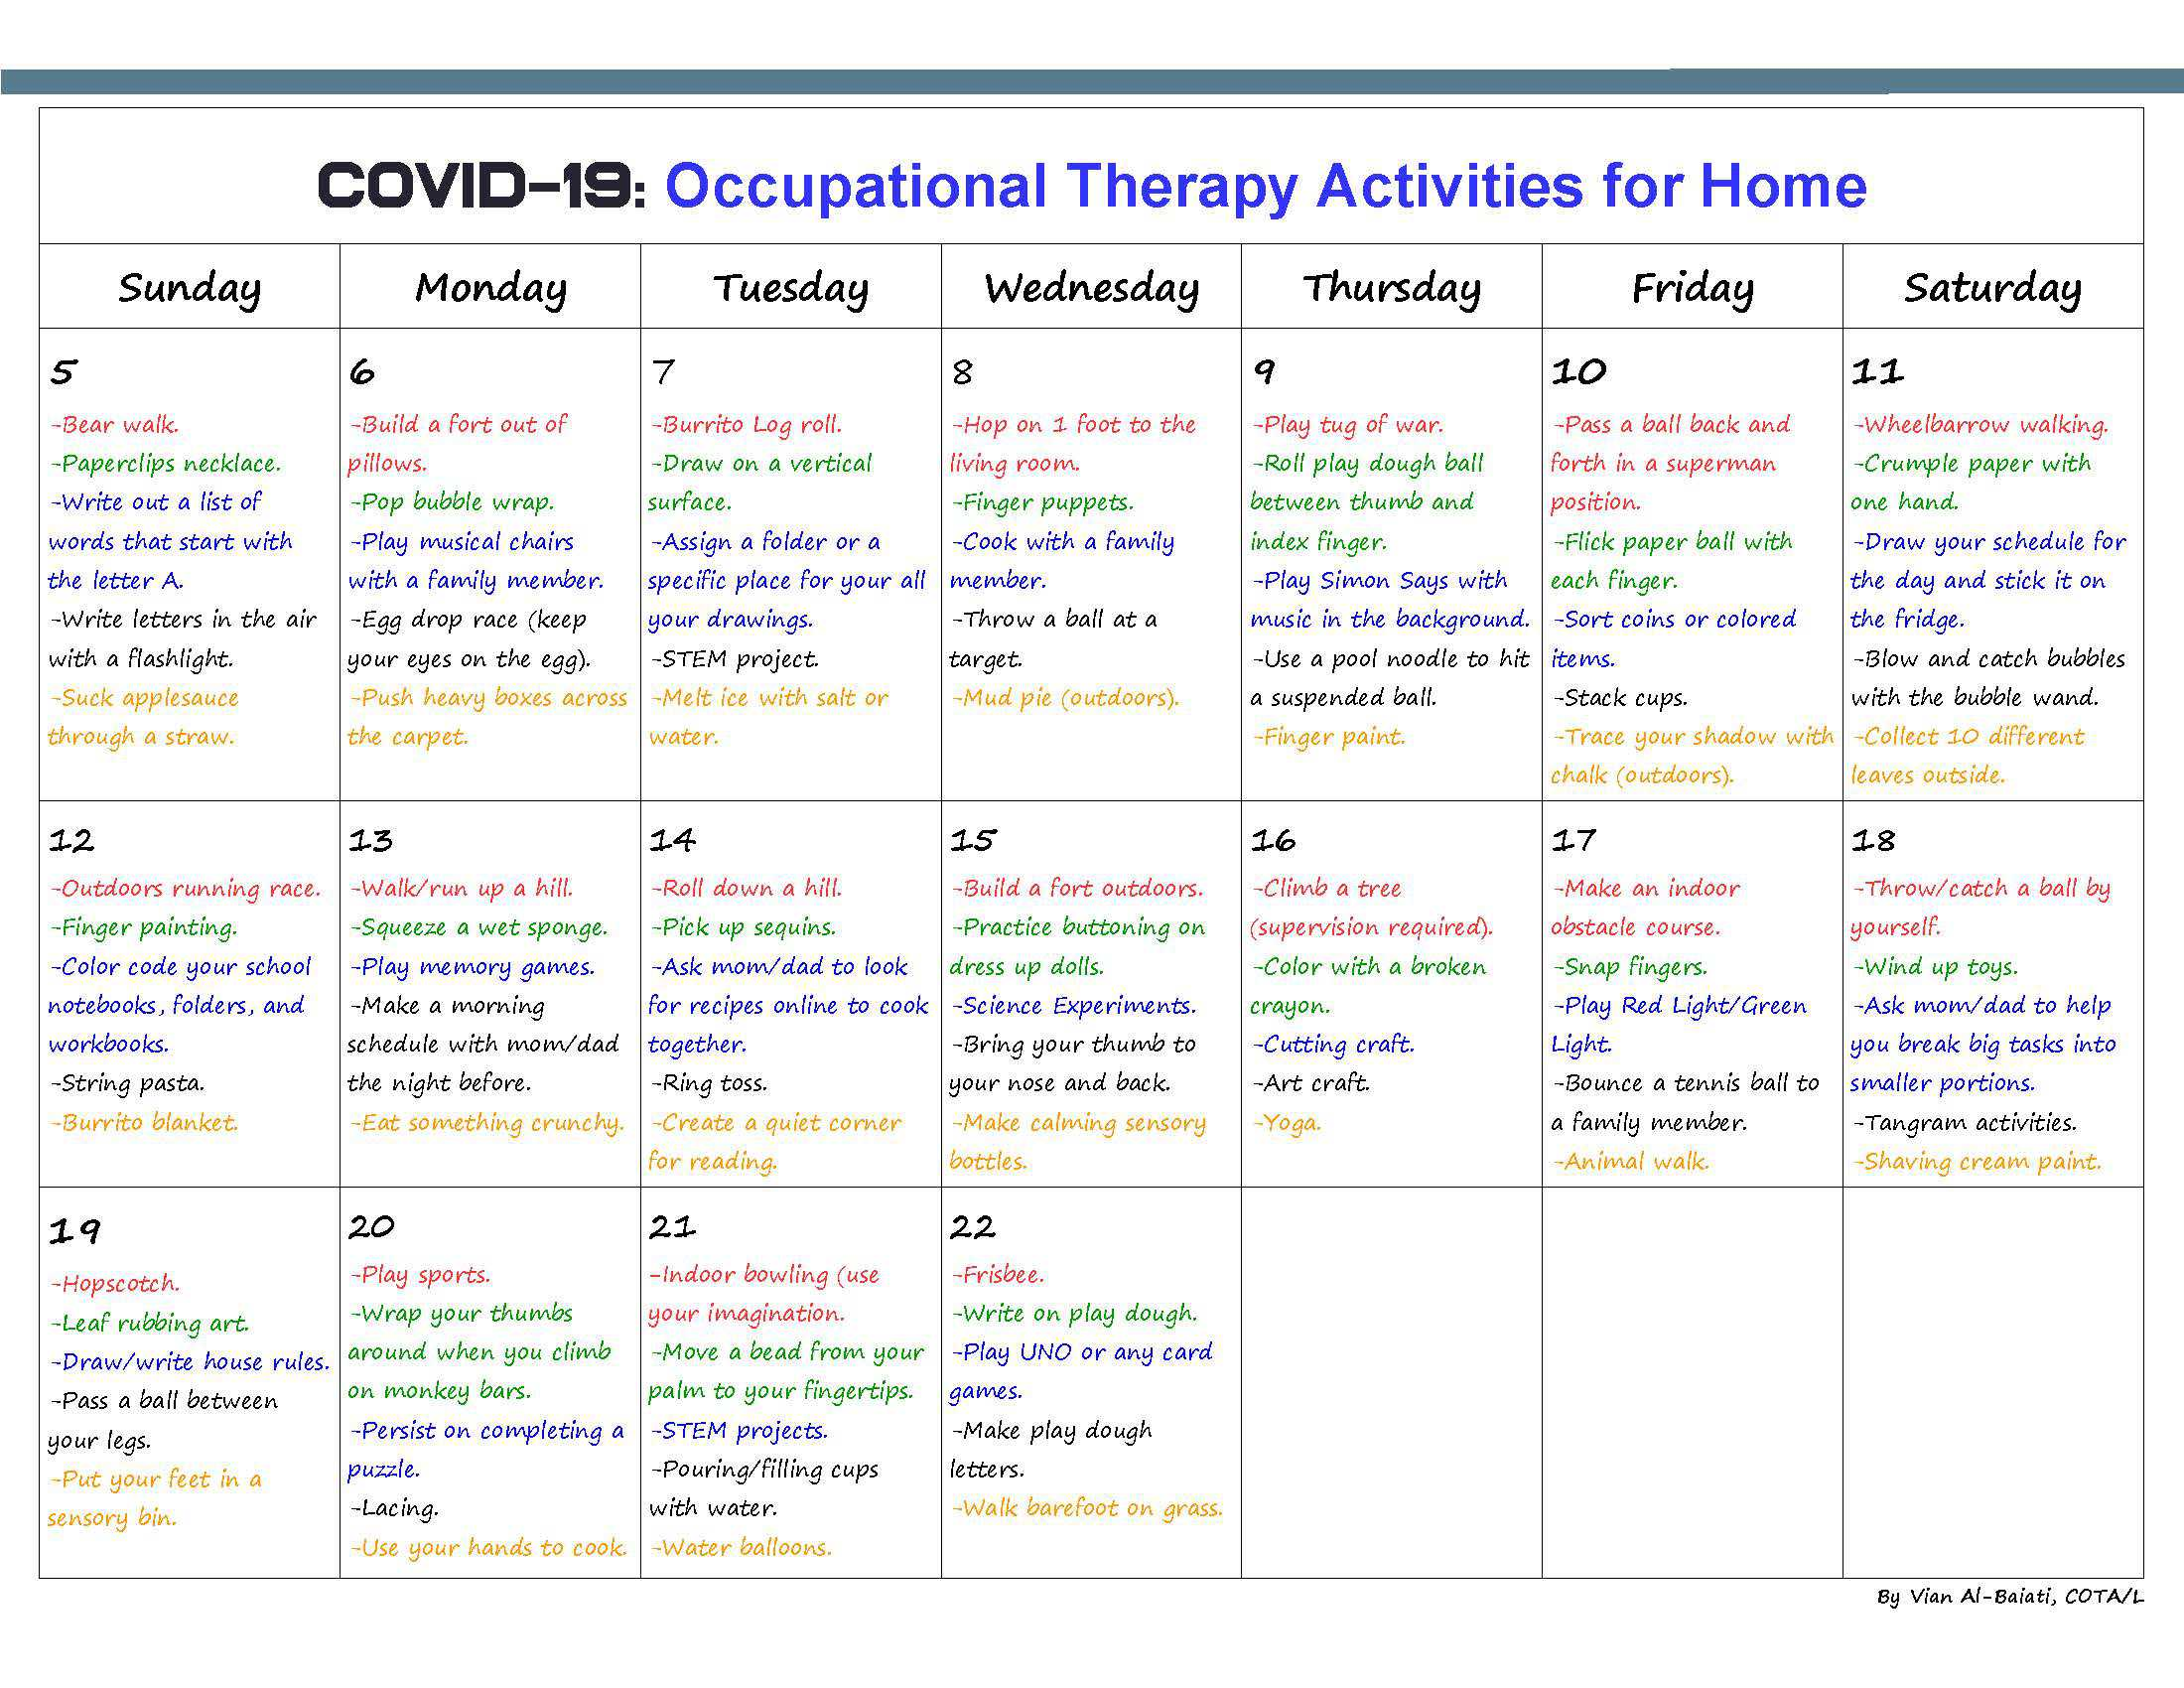 COVID-19: Occupational Therapy Activities for Home page 2